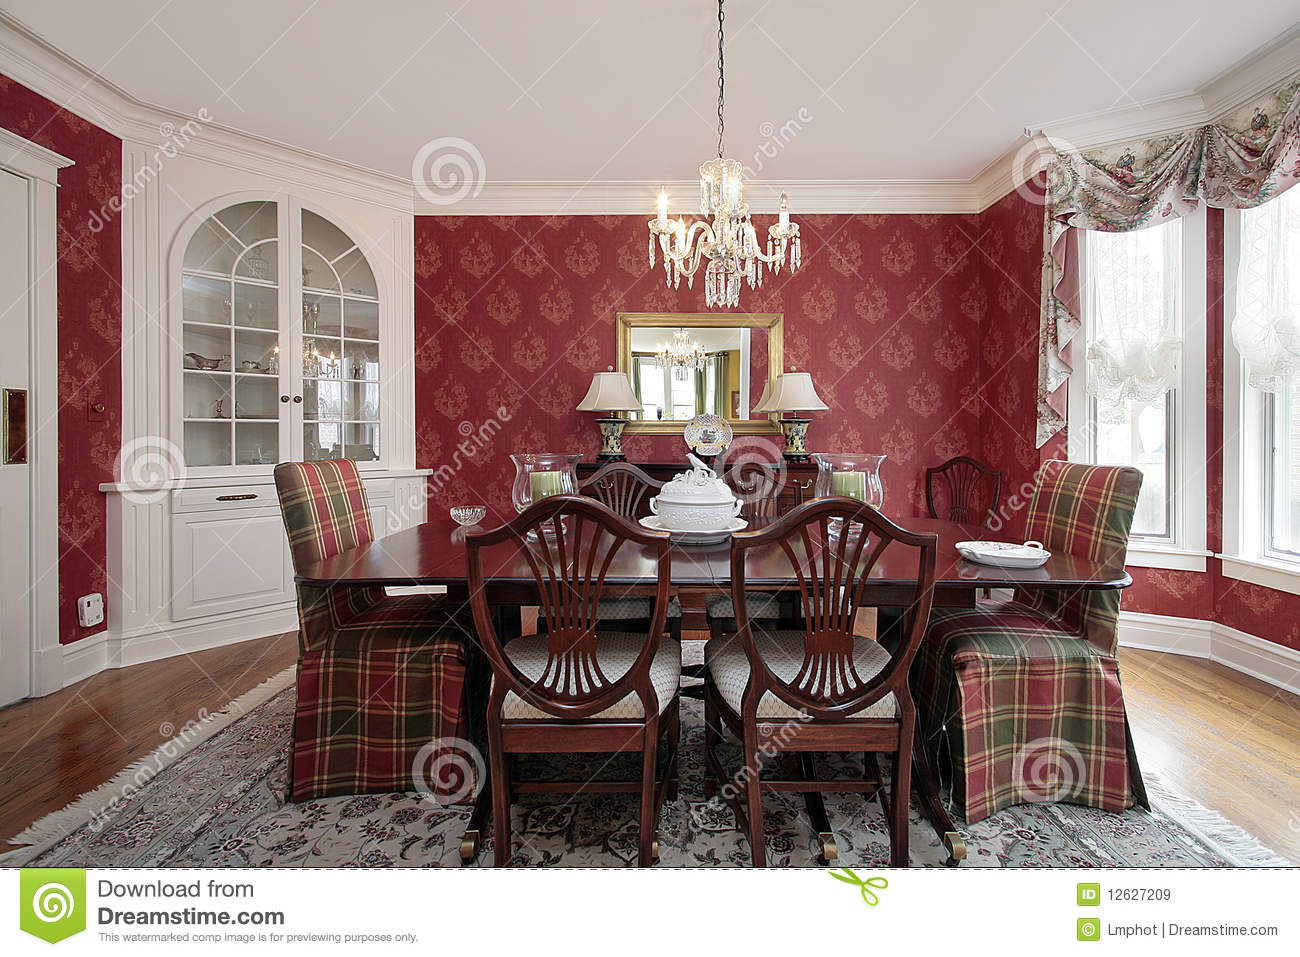 Royalty Free Stock Photo. Download Dining Room With Red Walls ... Part 41